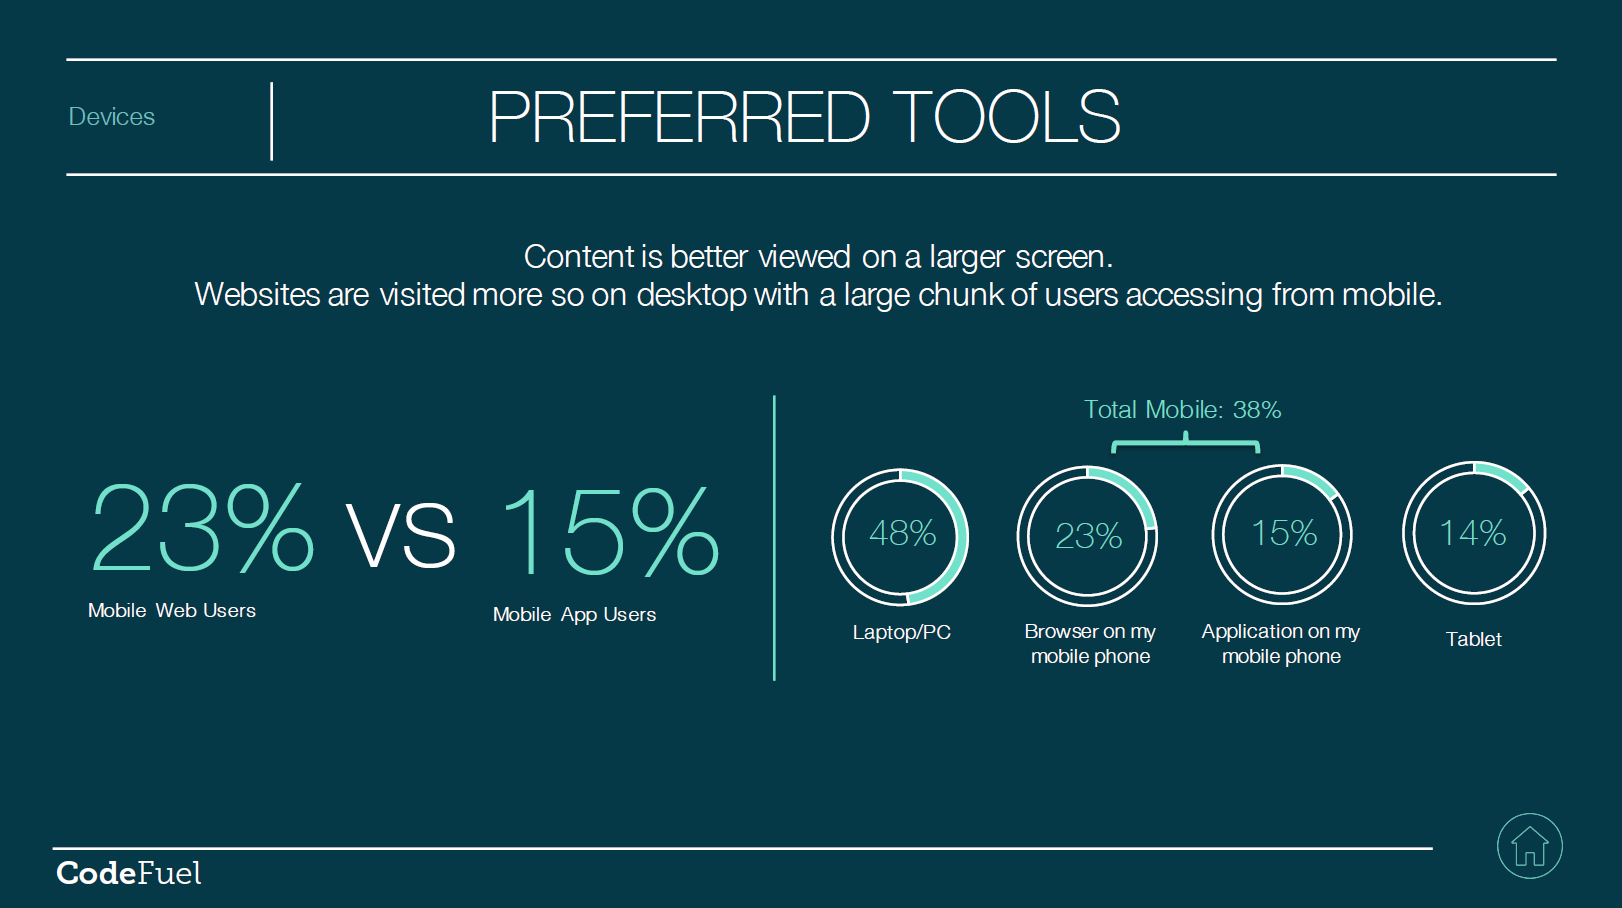 Preferred Tools - eBook Slide